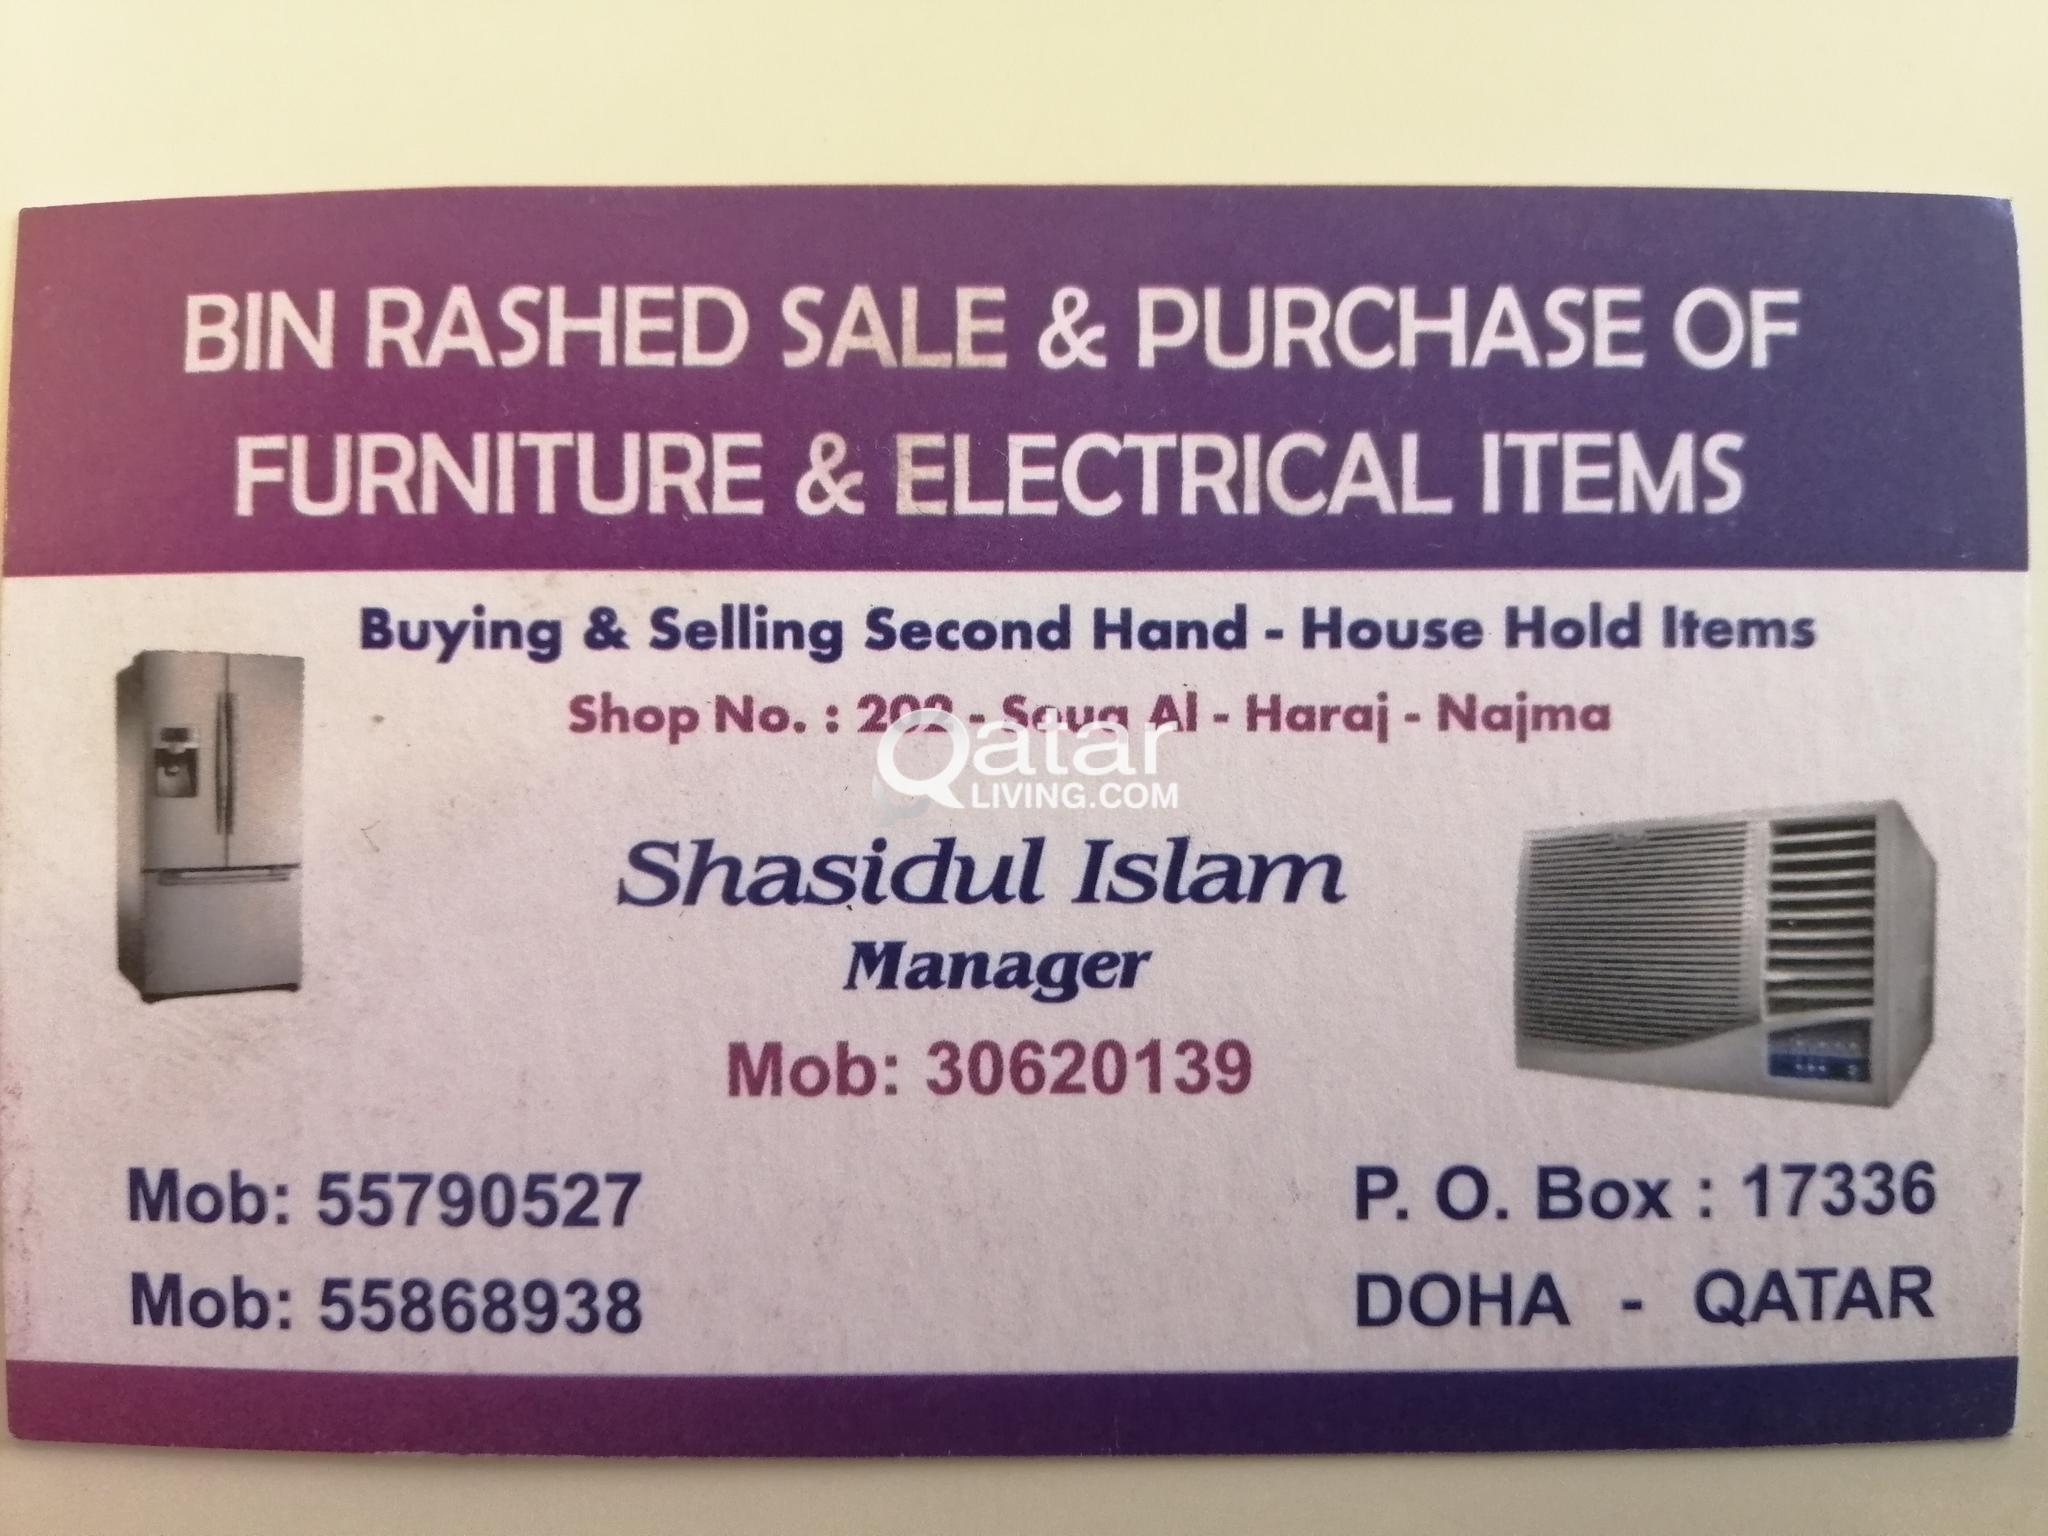 Buy and sell house or office furniture items. Please call 55790527